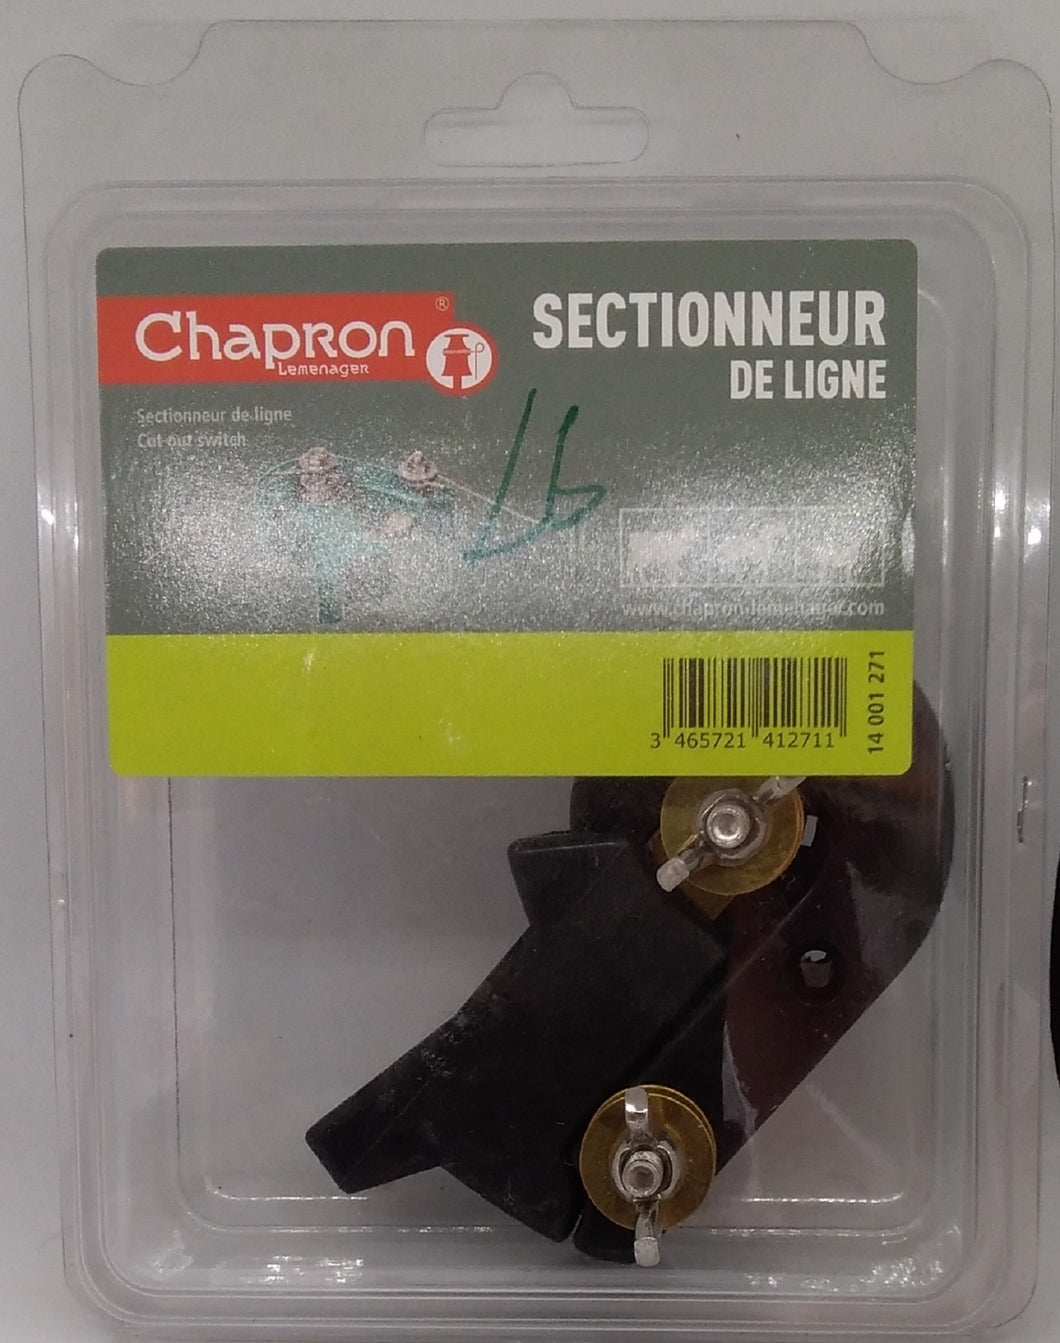 Chapron Cut out Switch